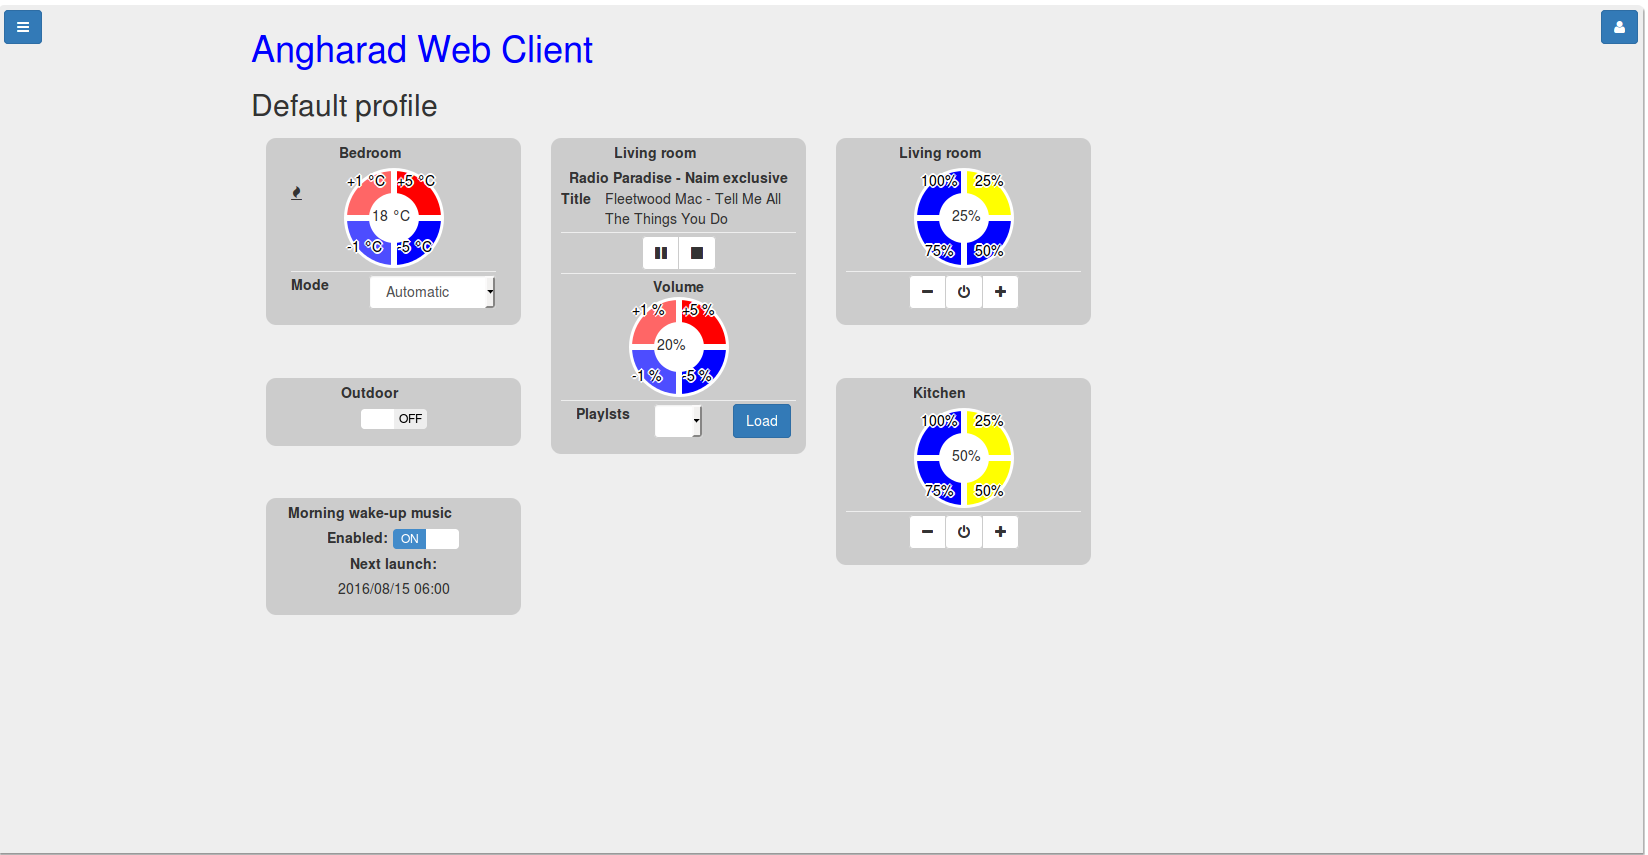 Angharad web client